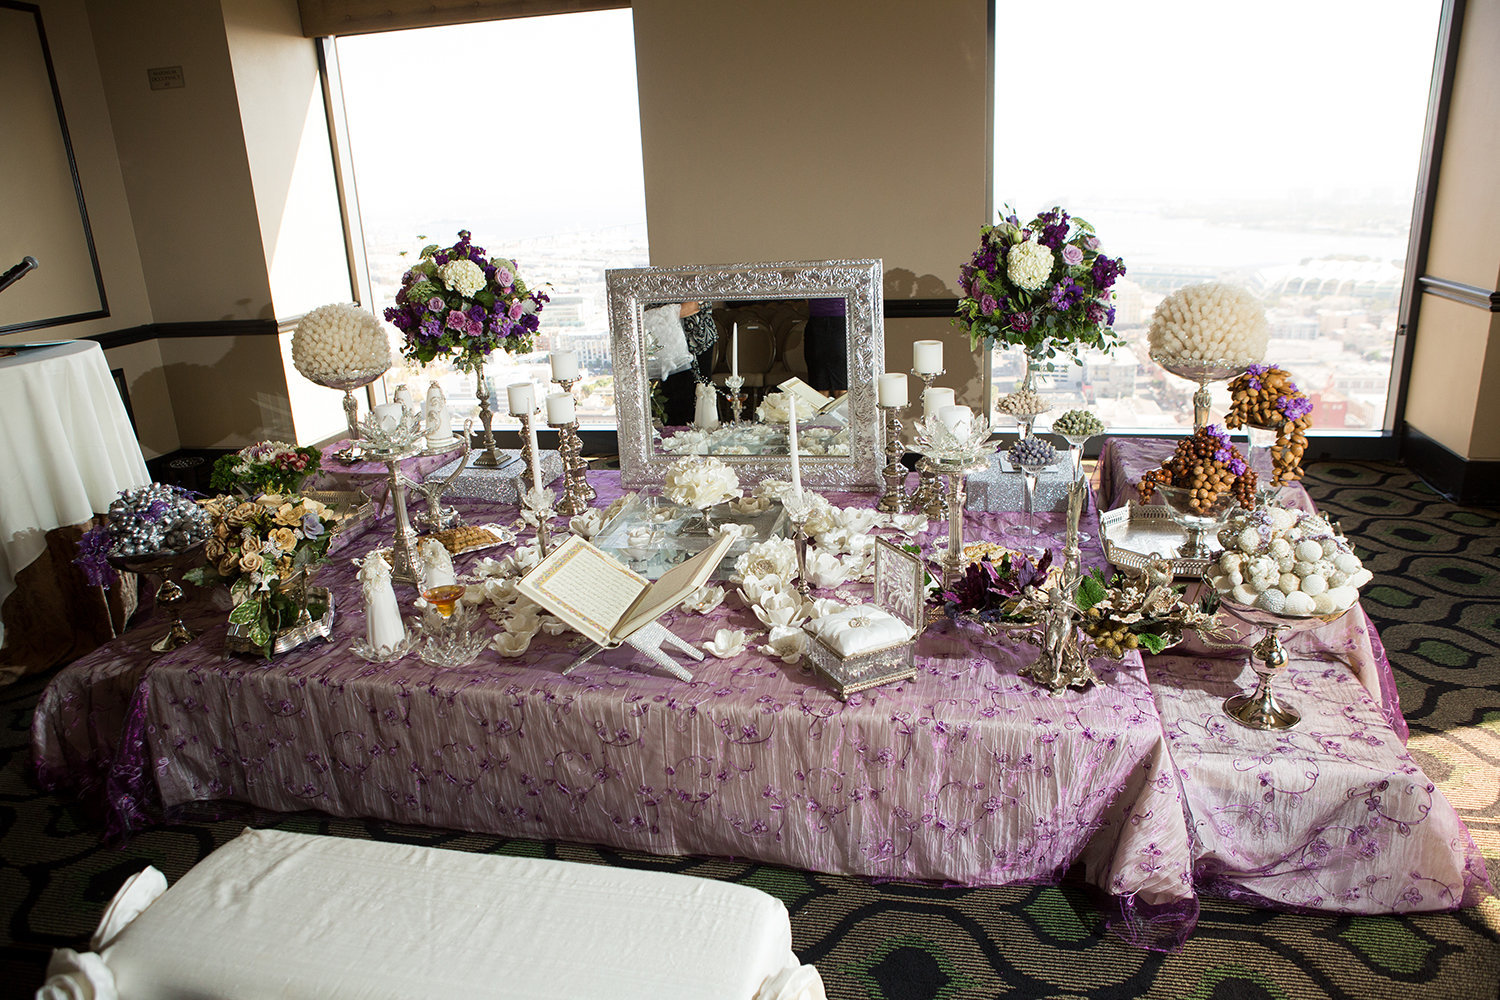 Elegant Sofreh setup at a wedding in San Diego | The University Club atop Symphony Tower